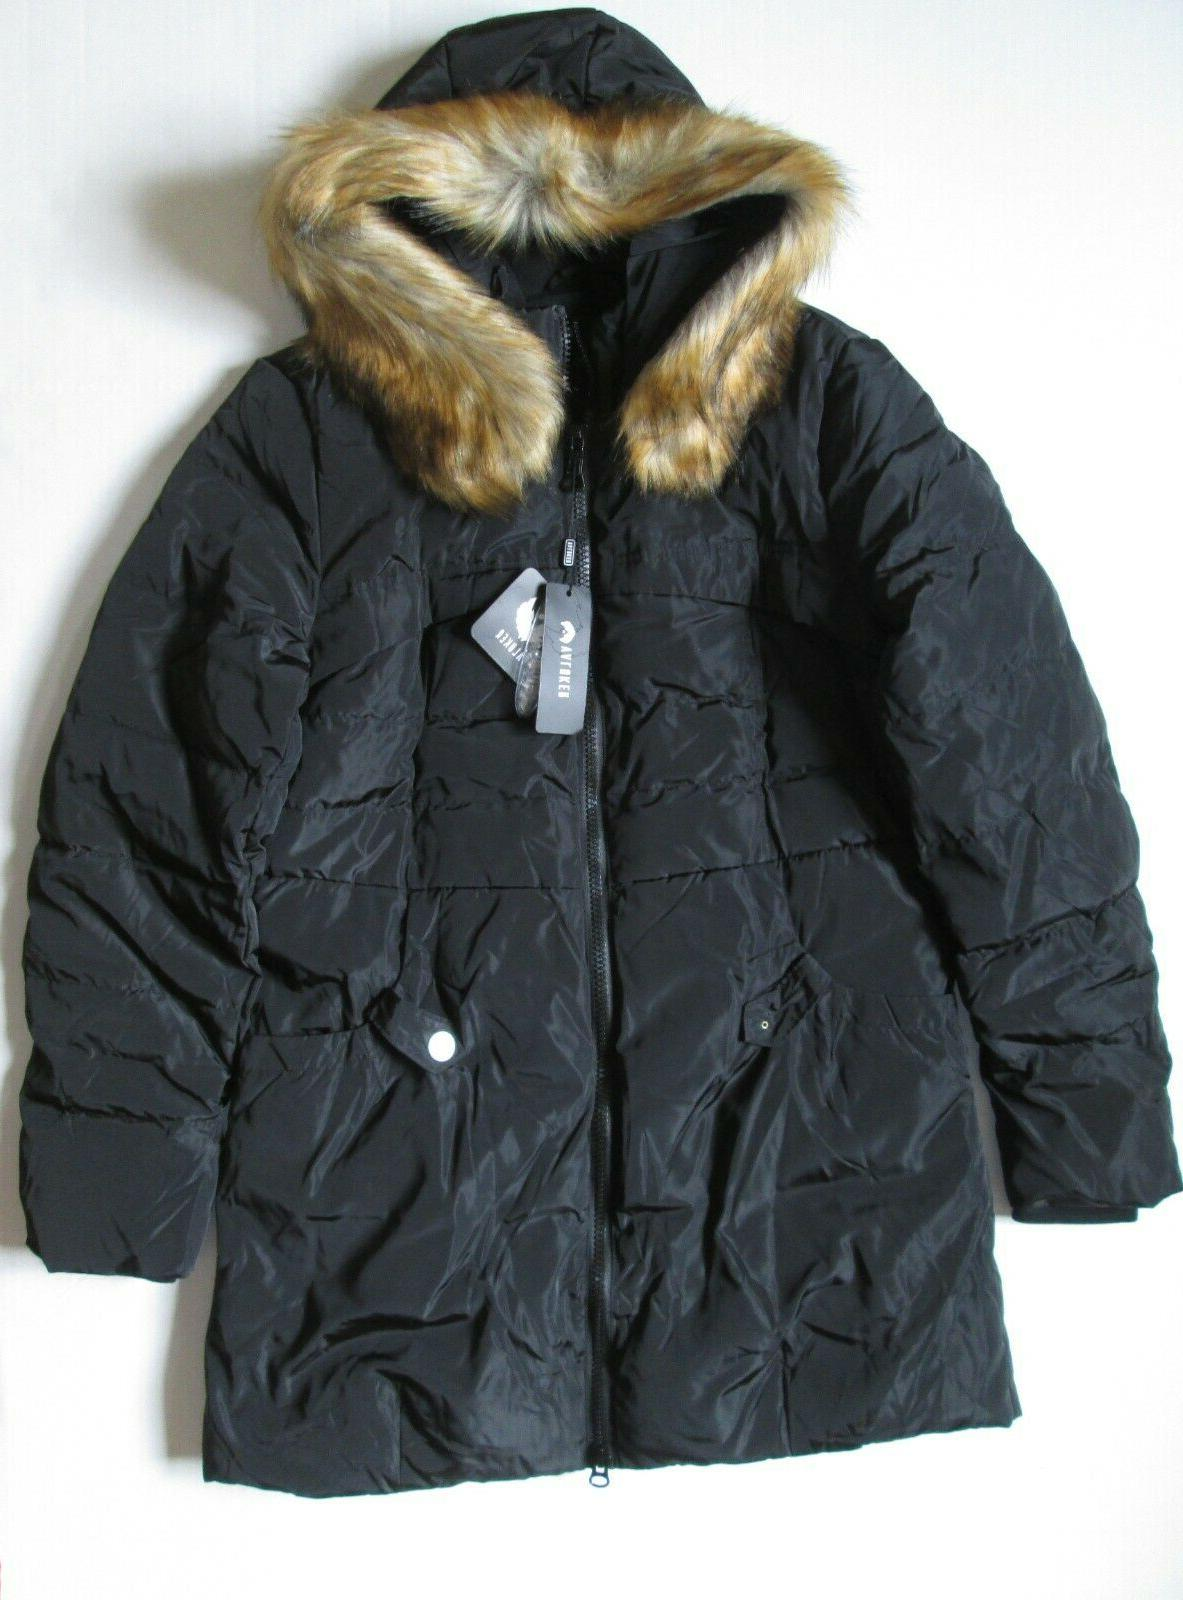 Valuker Coat with Faux Fur Hood Puffer Jacket L NWT